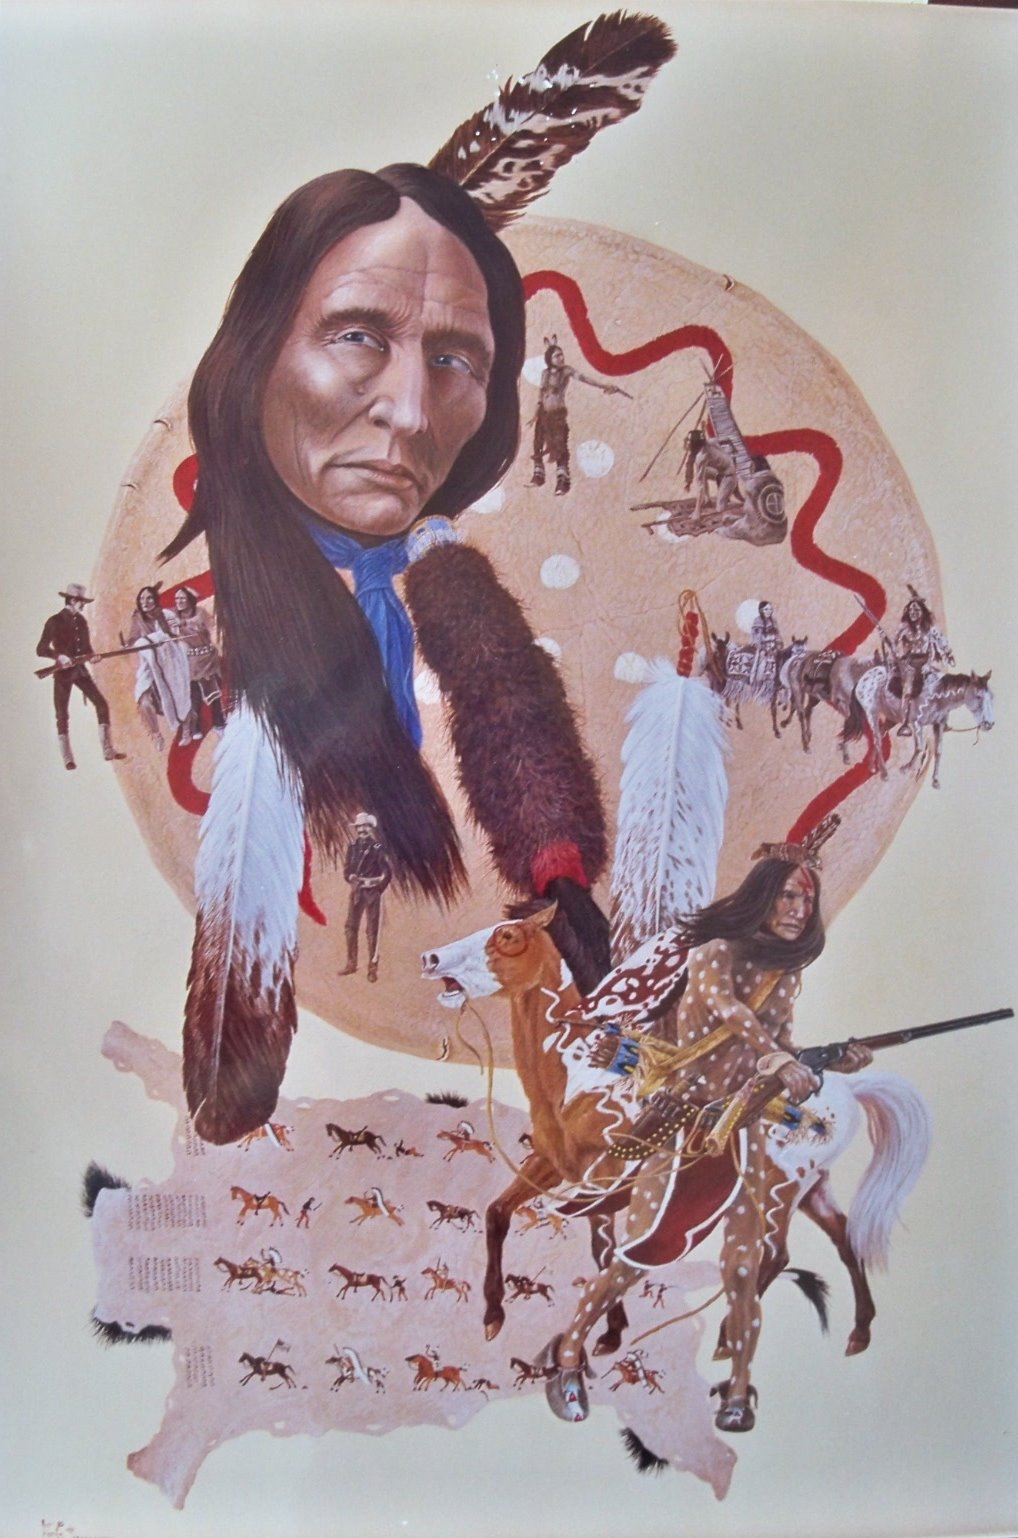 crazy horse man of The People